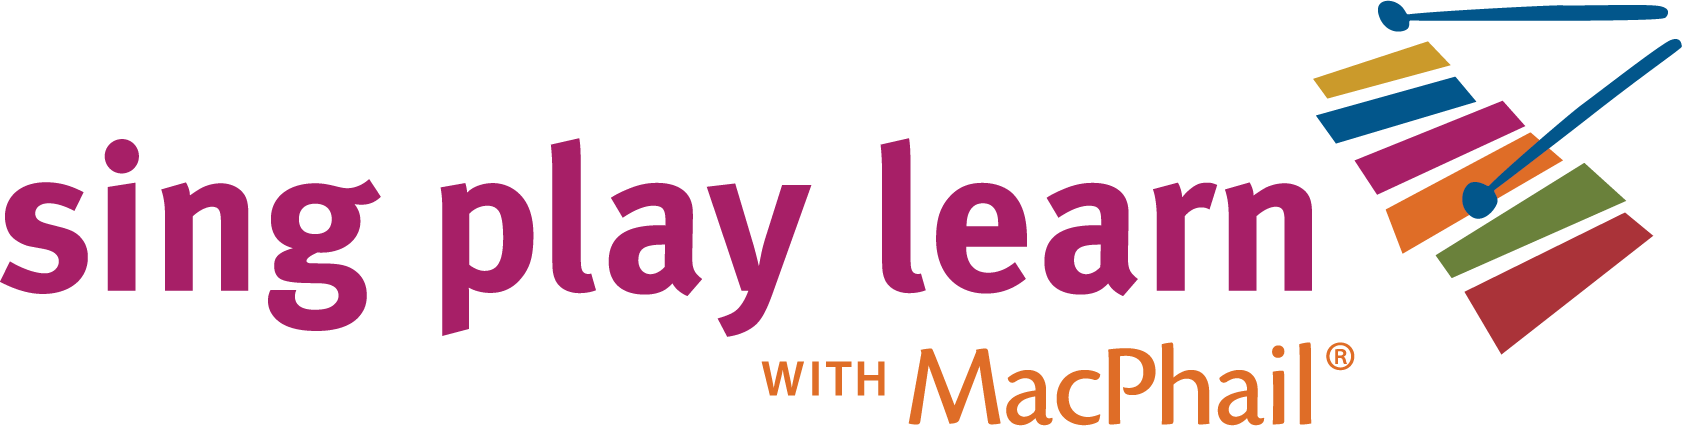 Sing Play Learn with MacPhail logo